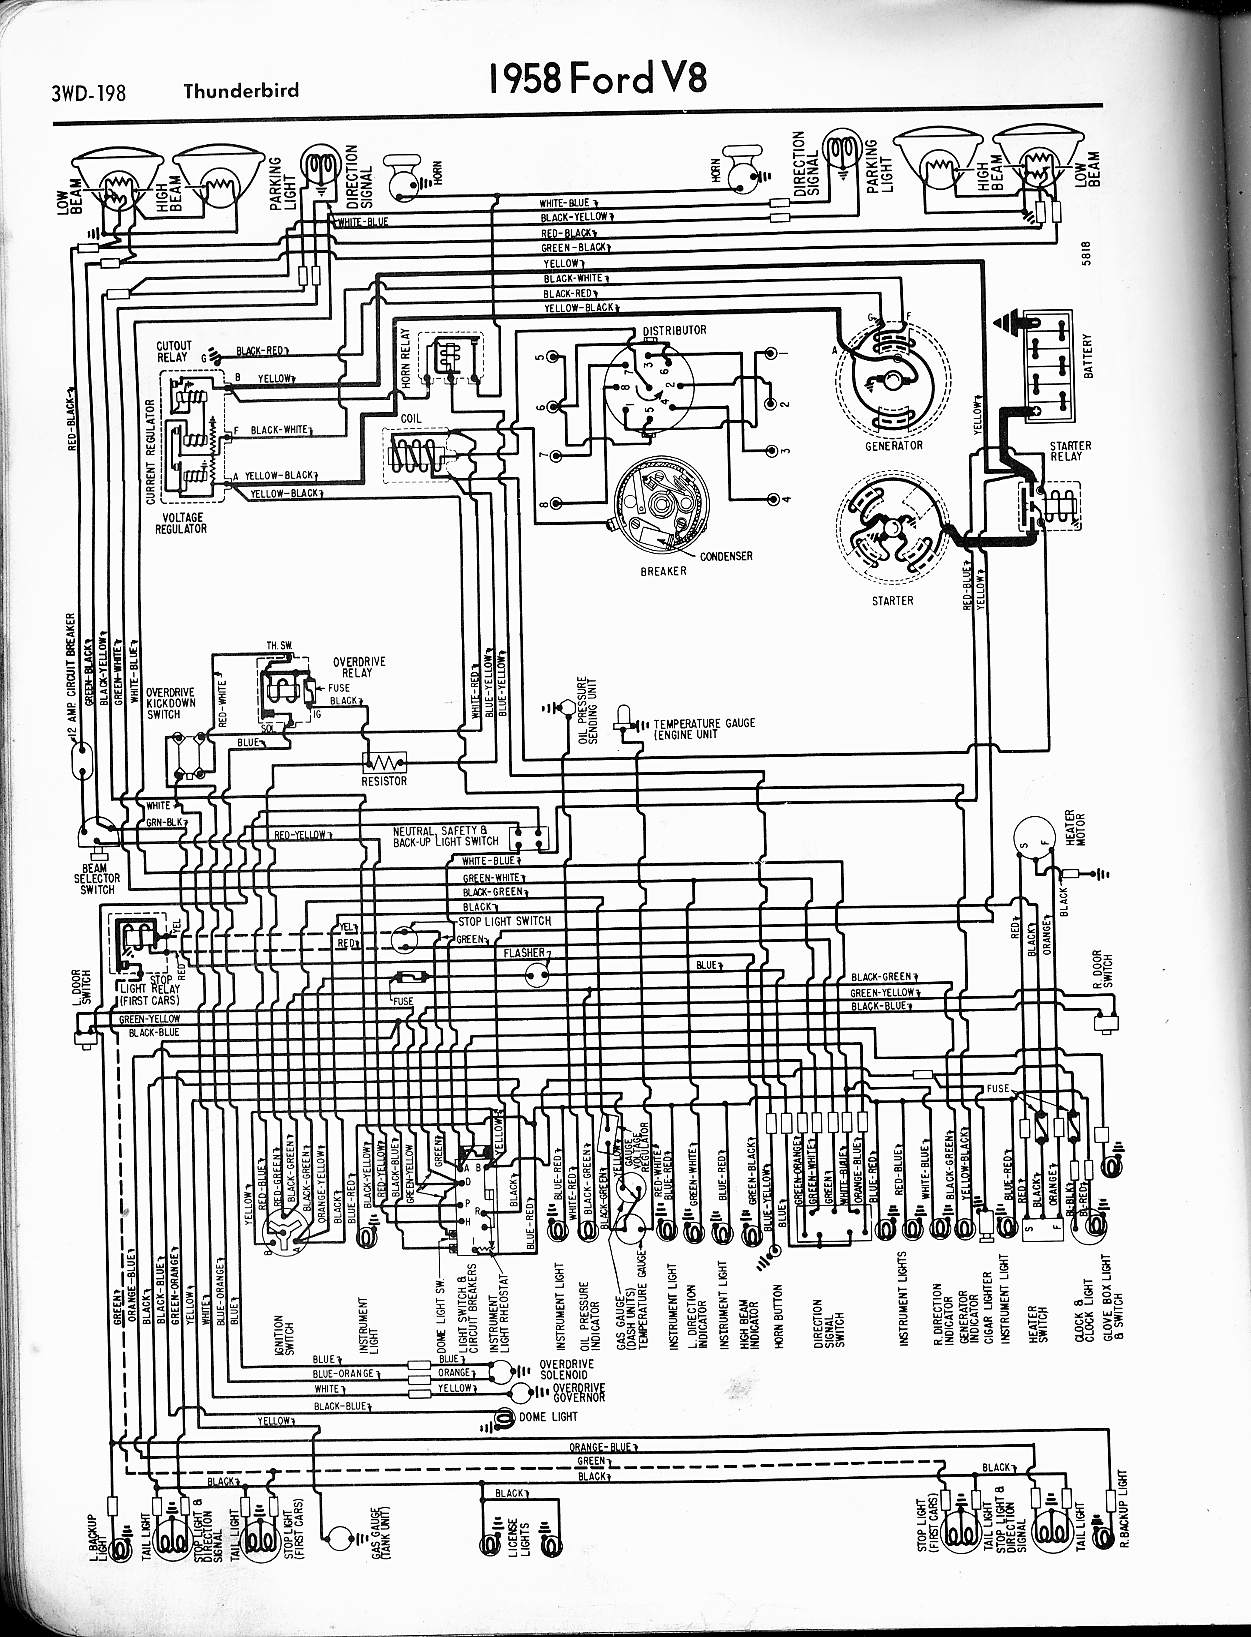 64 Corvette Headlight Switch Wiring Diagram Libraries Reverse Lamp For 2002 F150 1958 Captain Source Of Wiring1958 Ford F100 Third